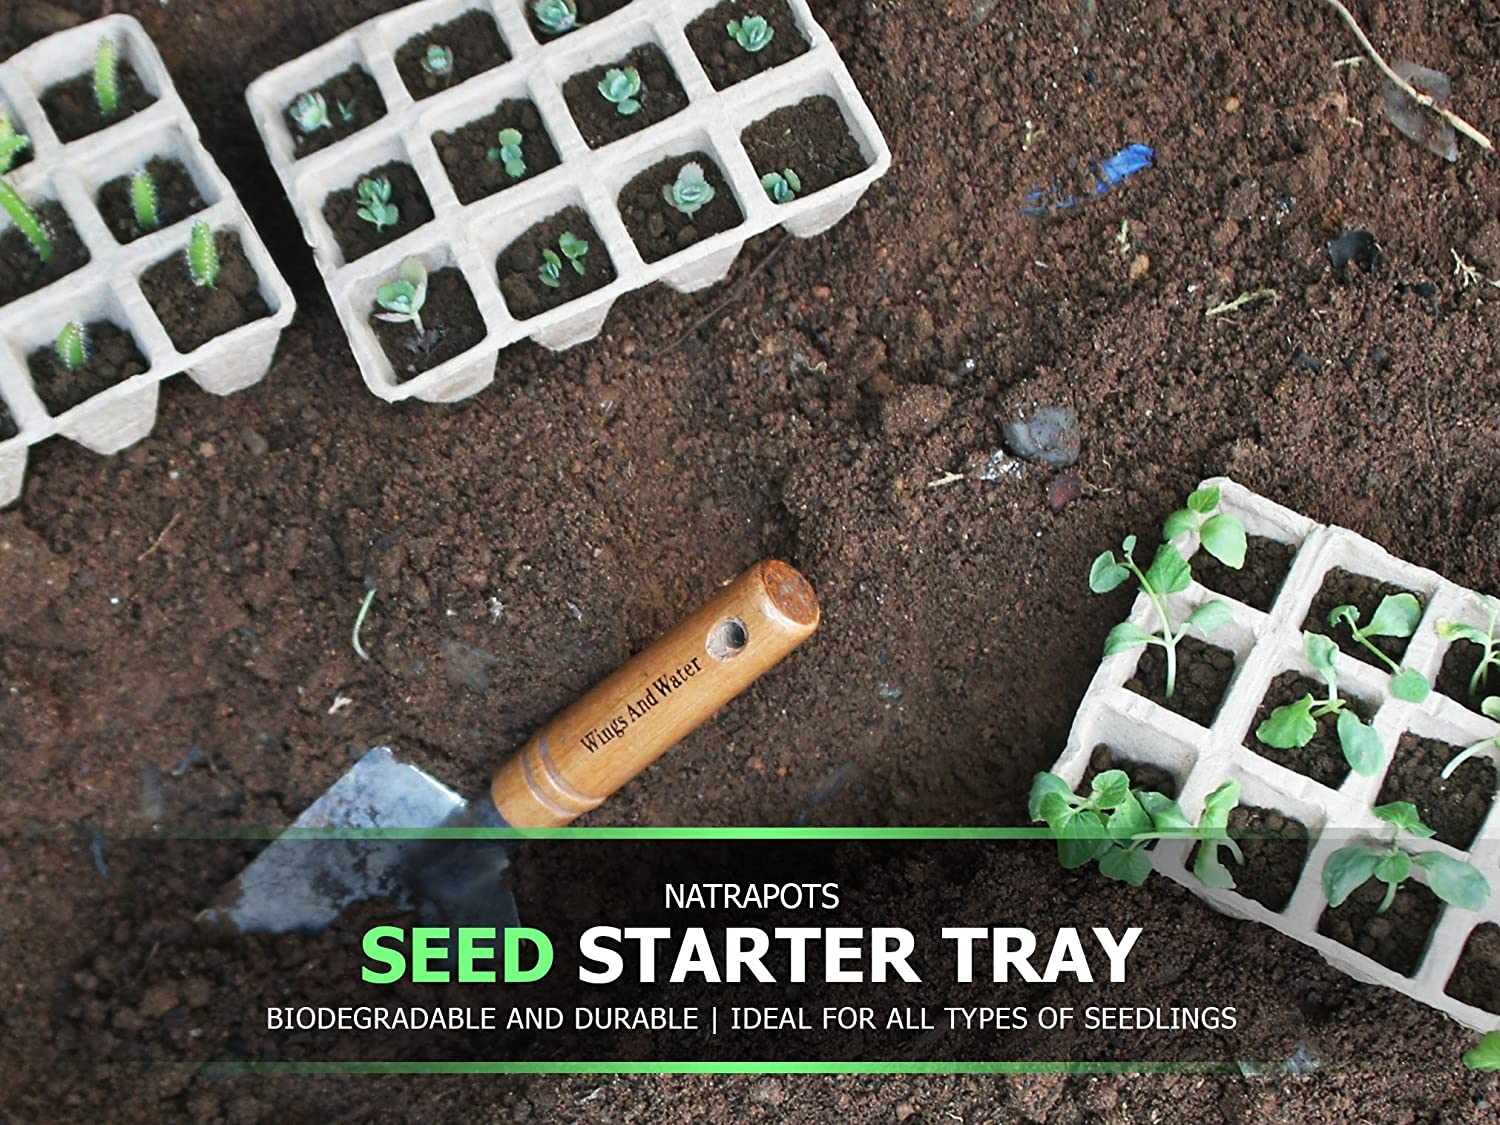 100/% Natural and Biodegradable Planting Pots for Organic Plant Growth 5 12-Cell Seedling Started Trays 60 Total Peat Pots Seed Starter Tray with 12 Reusable Plastic Markers